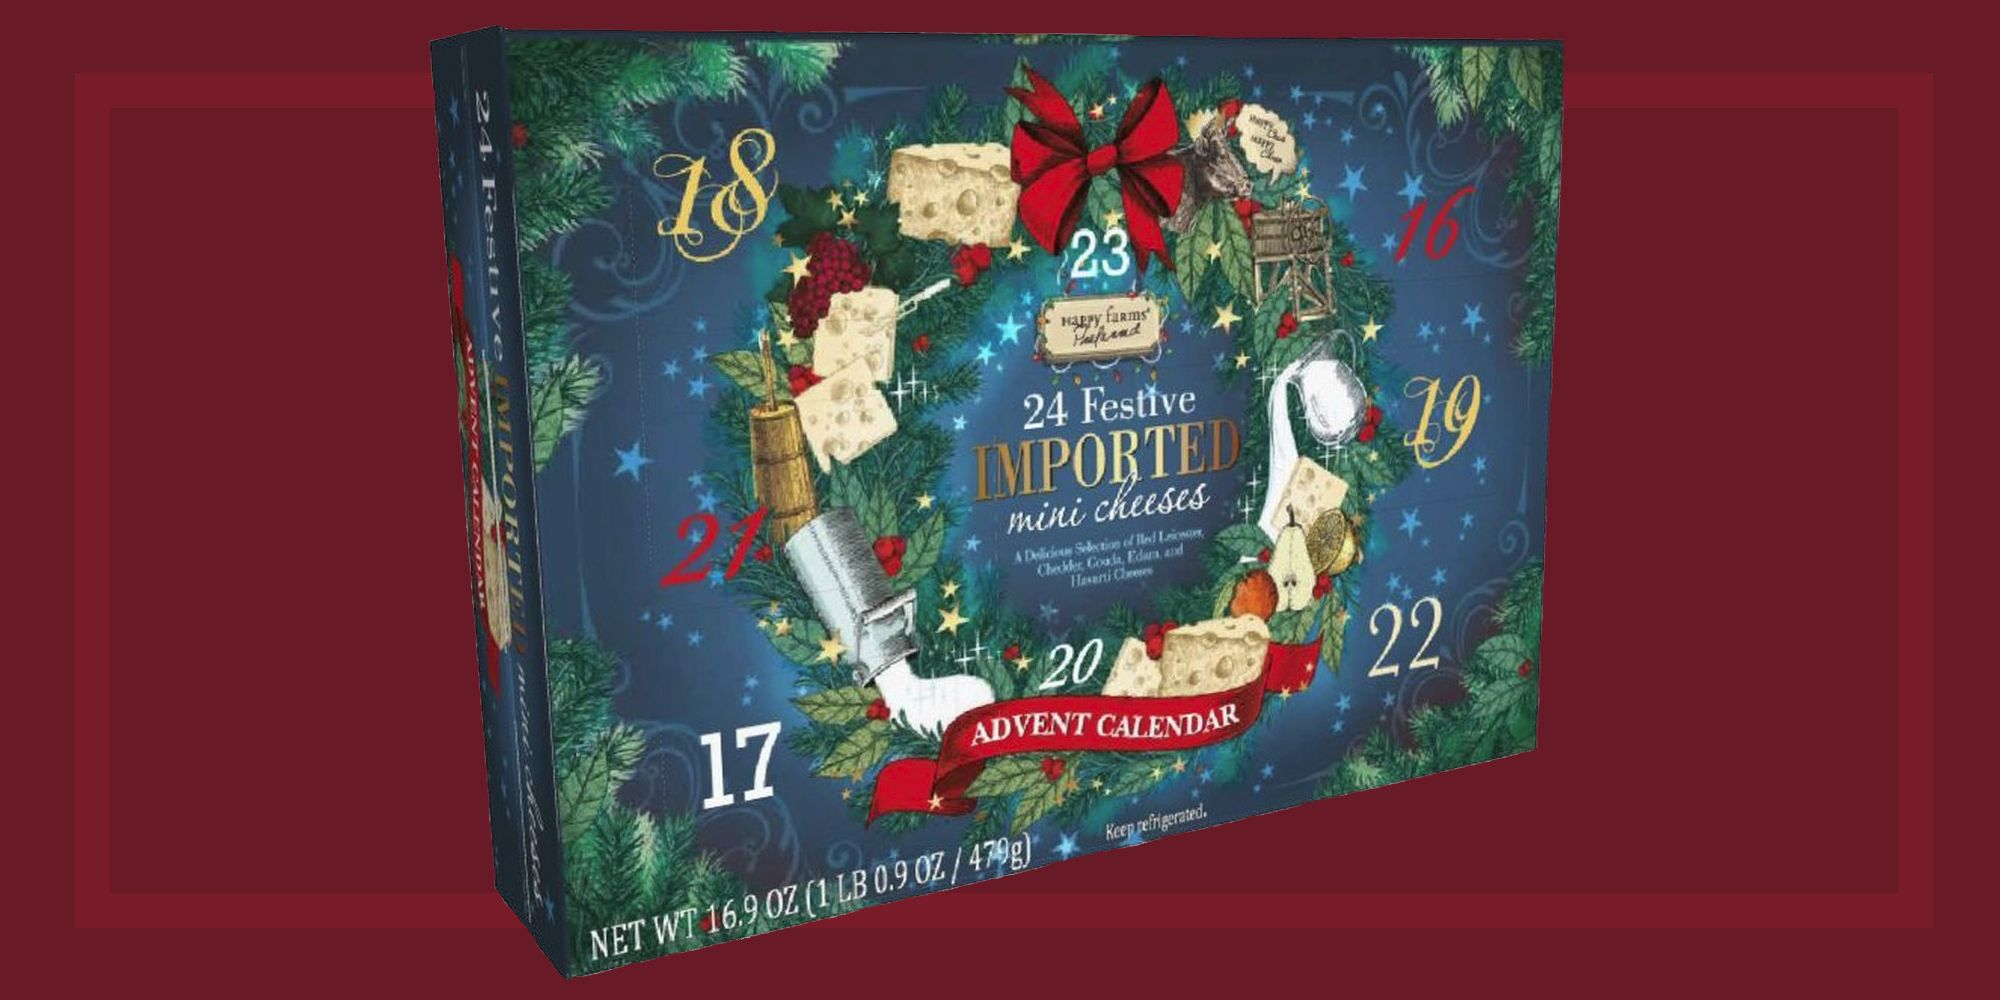 The Best Cheese Advent Calendars For the 2018 Holiday Season